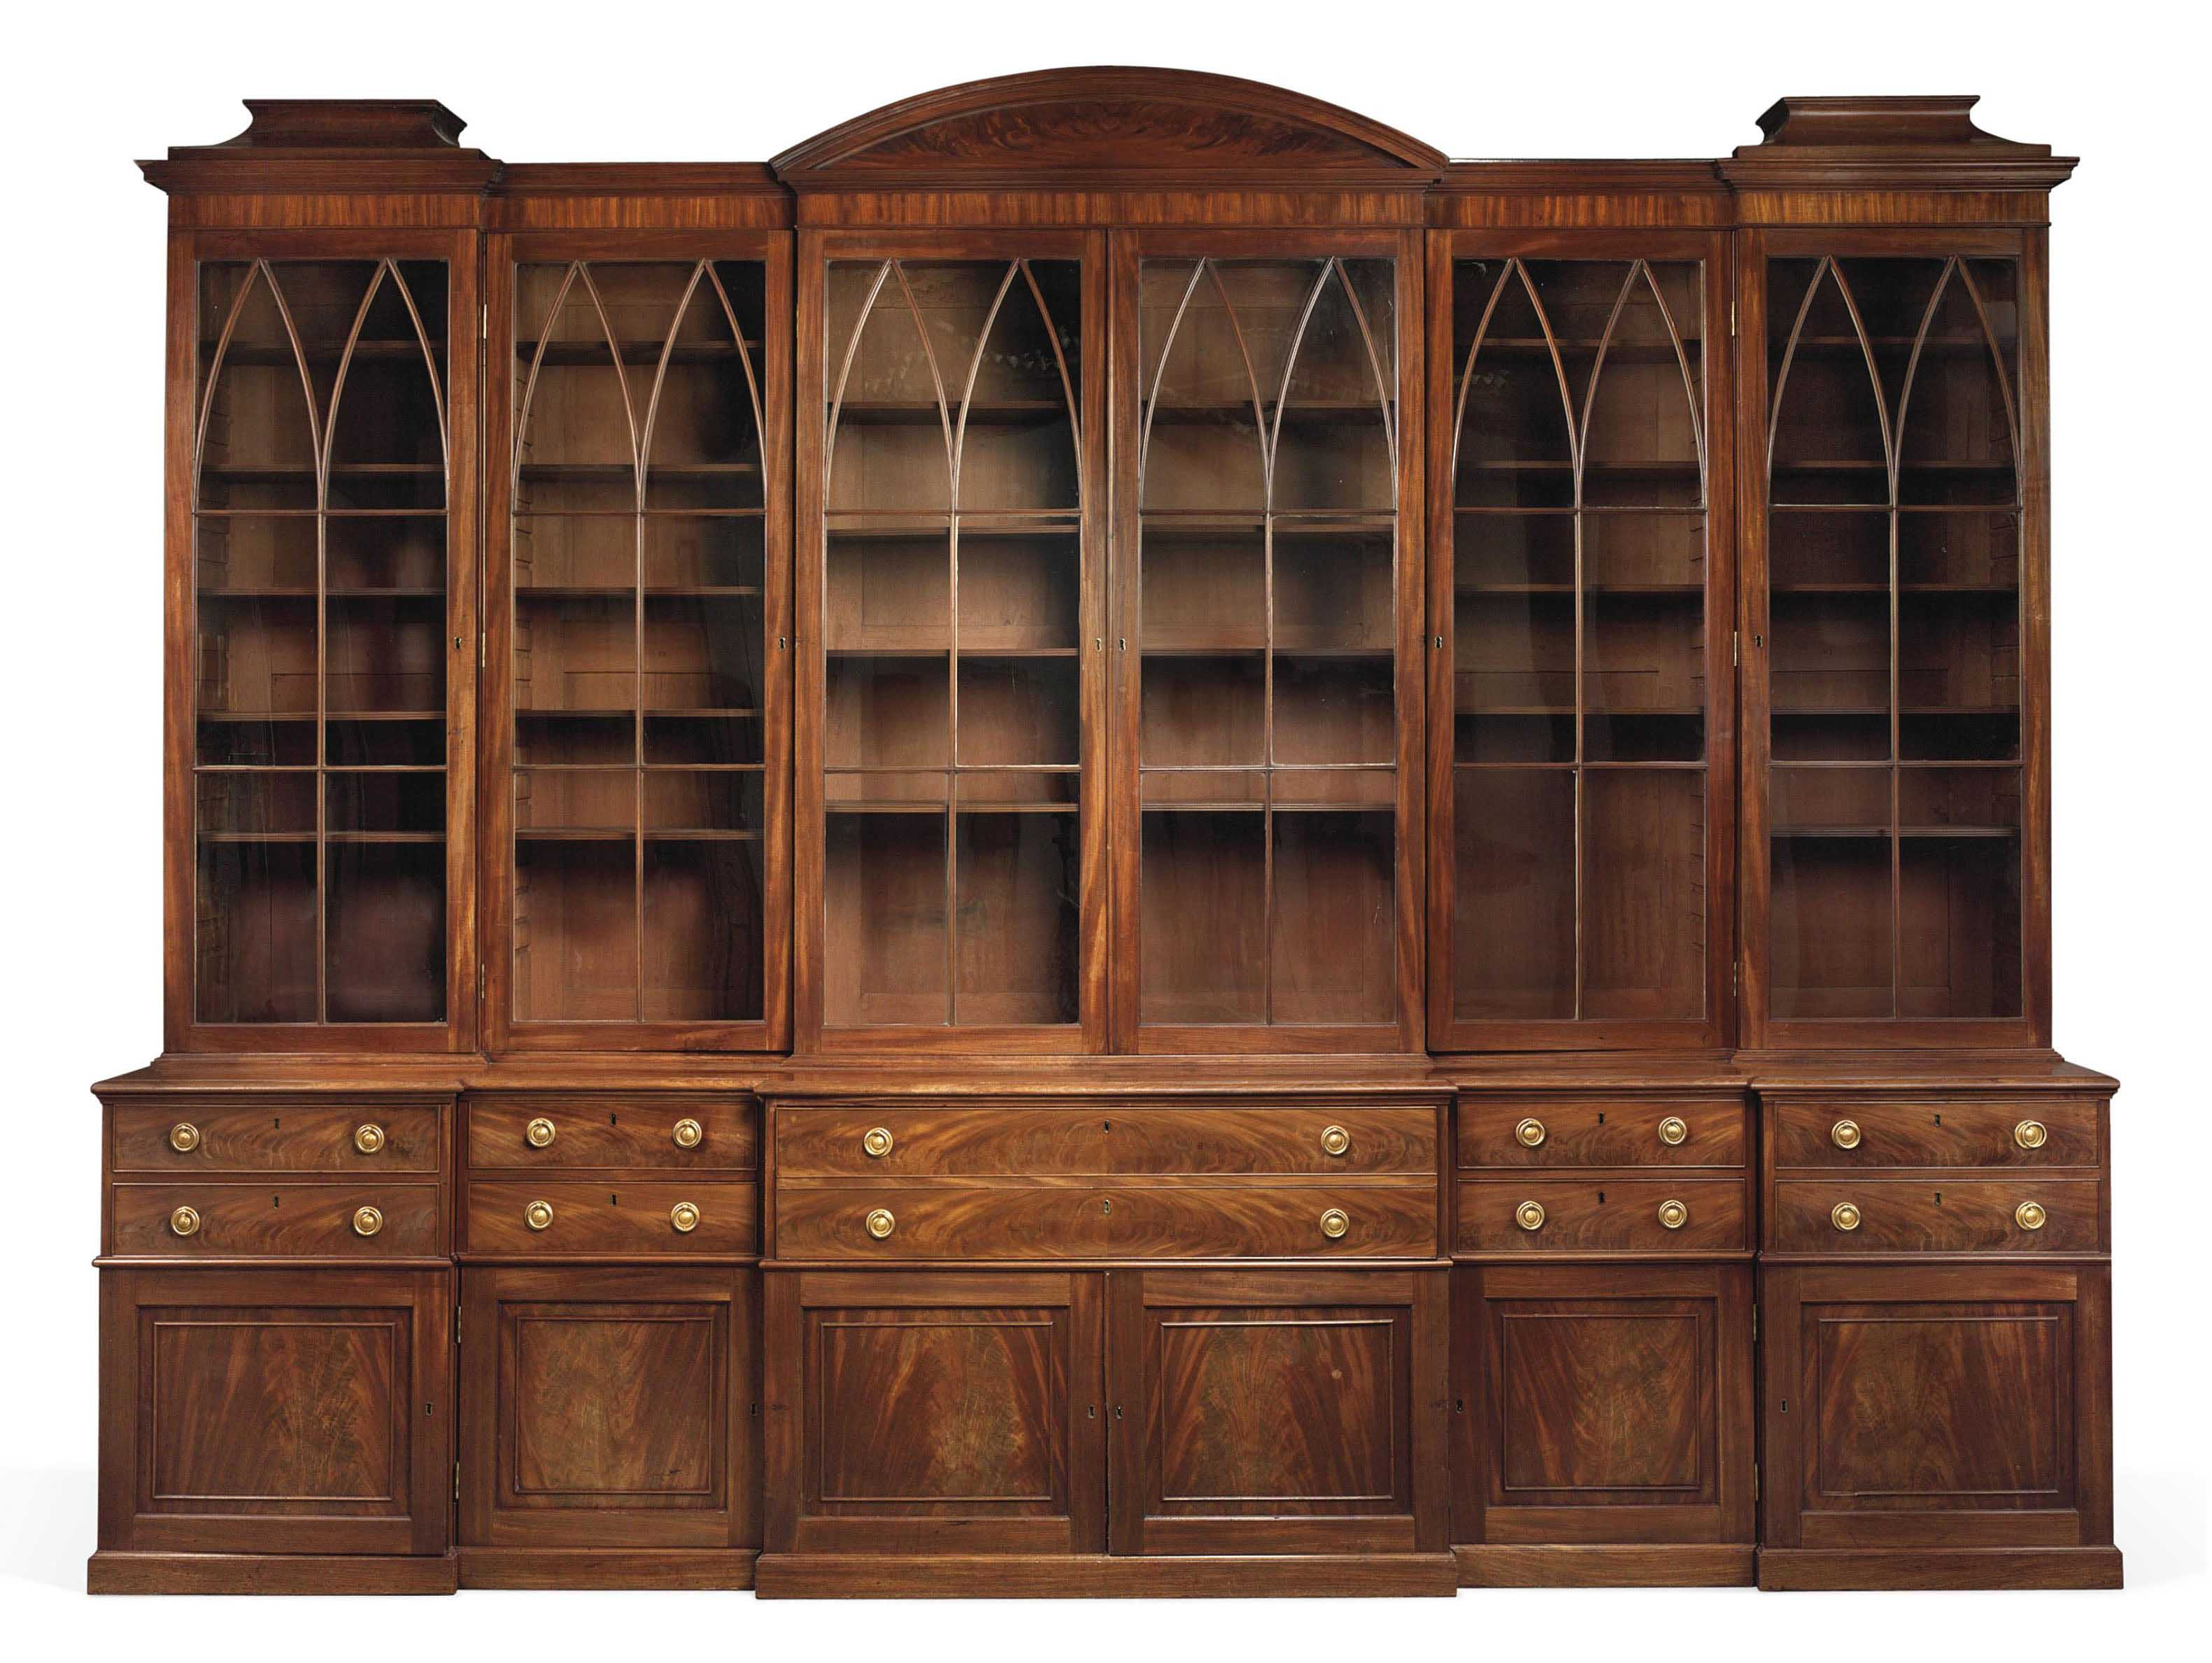 A GEORGE III MAHOGANY SECRETAIRE LIBRARY BREAKFRONT BOOKCASE